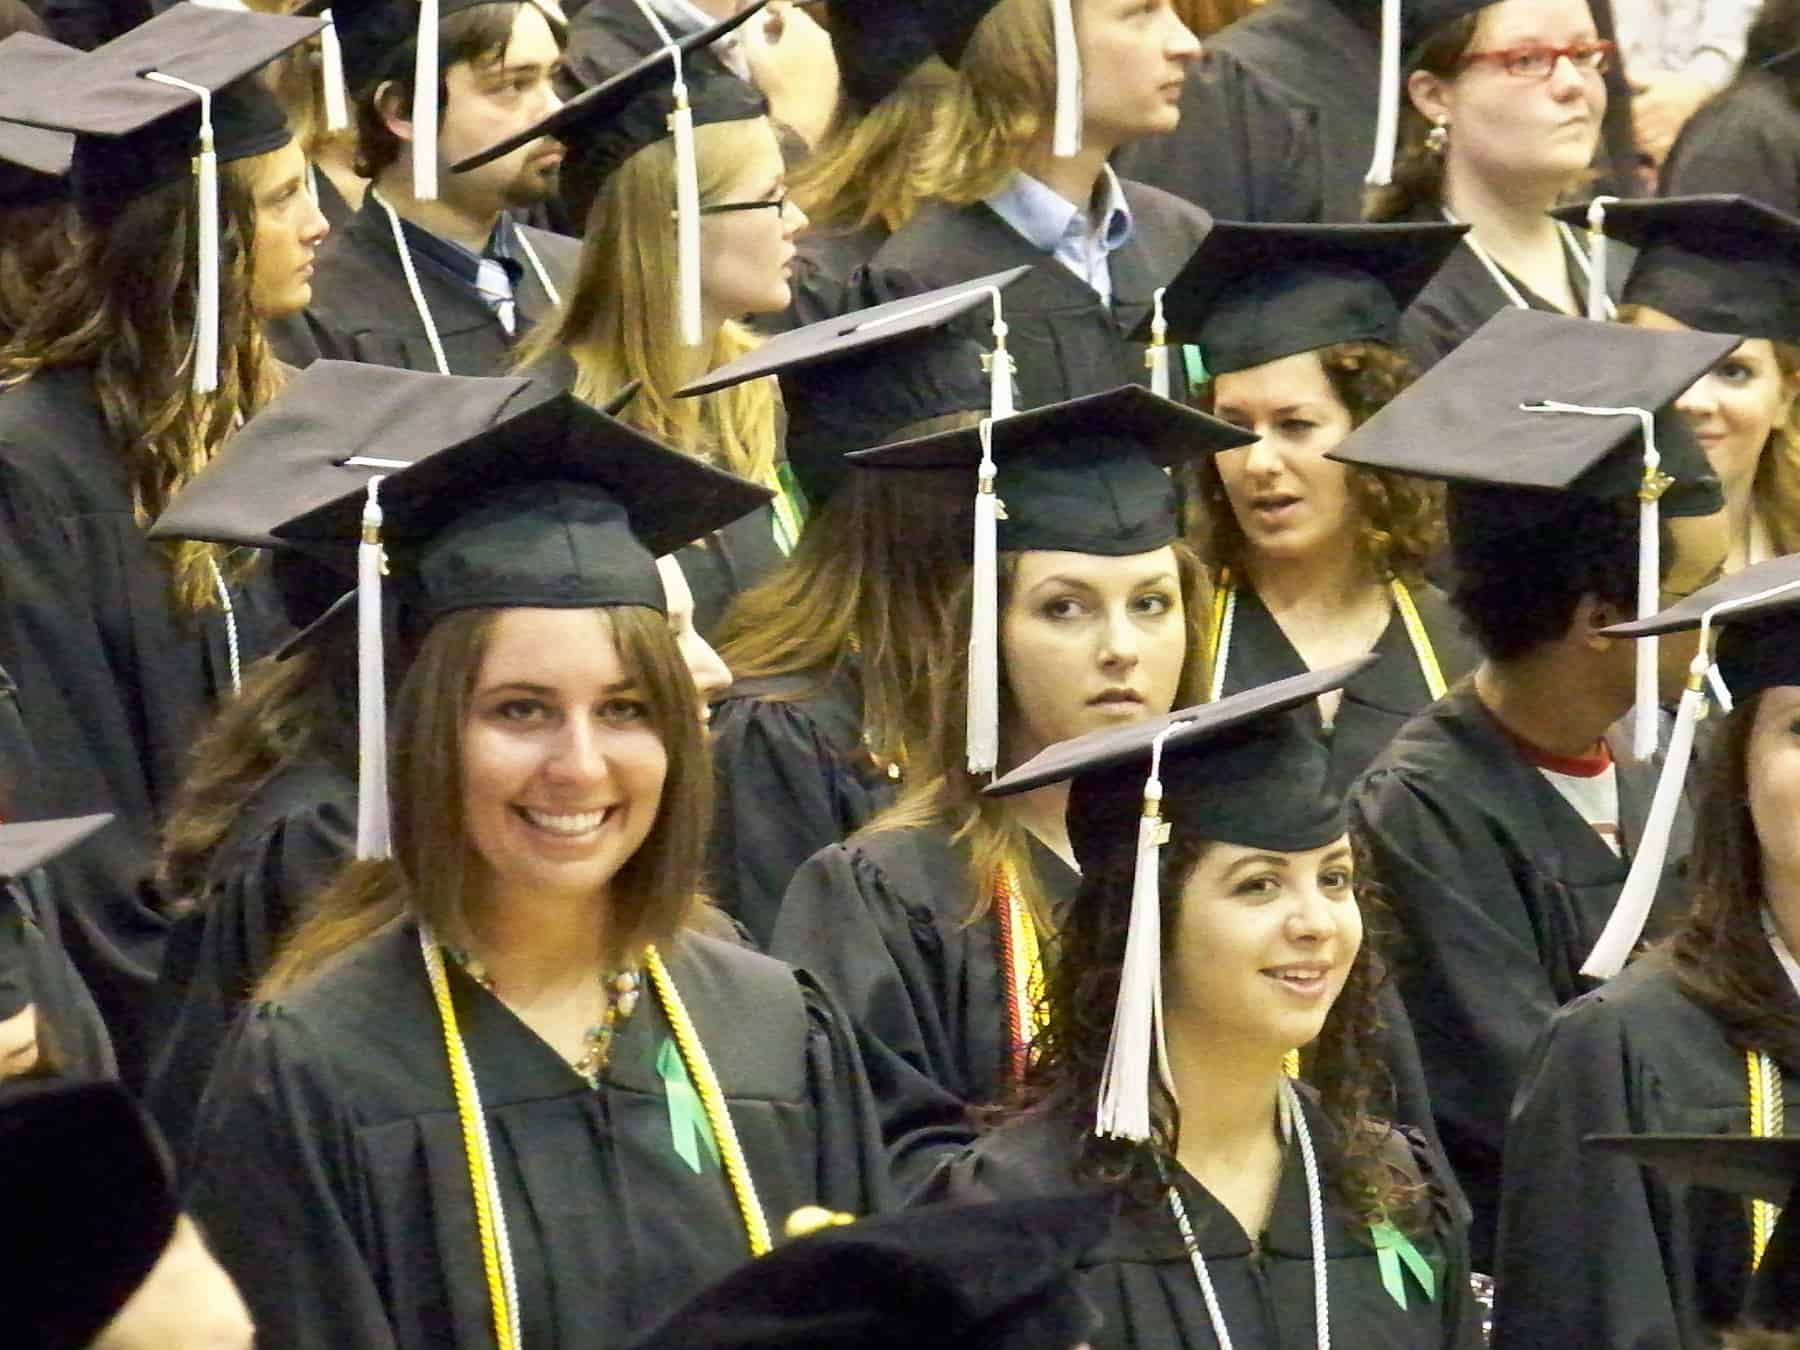 caitlin graduates from juniata college caitlin graduates from juniata college